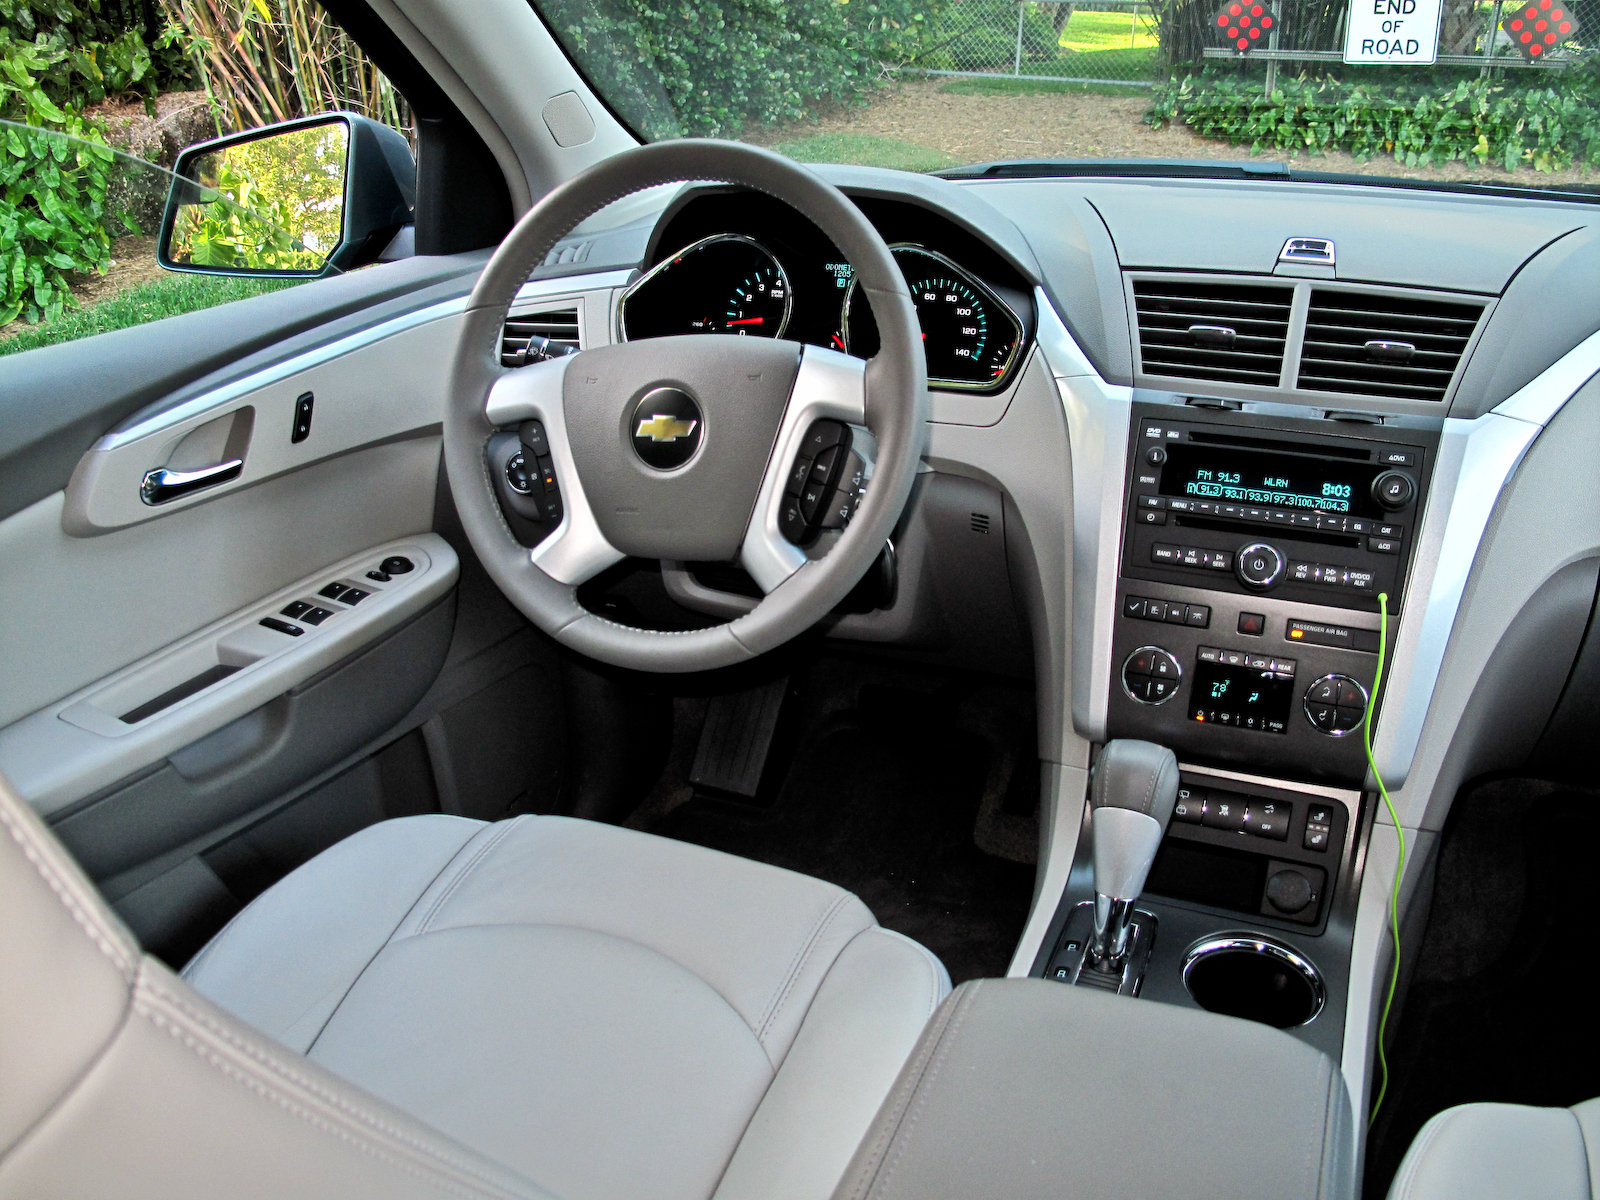 2009 Chevrolet Traverse Picture 289442 Car Review Top Speed